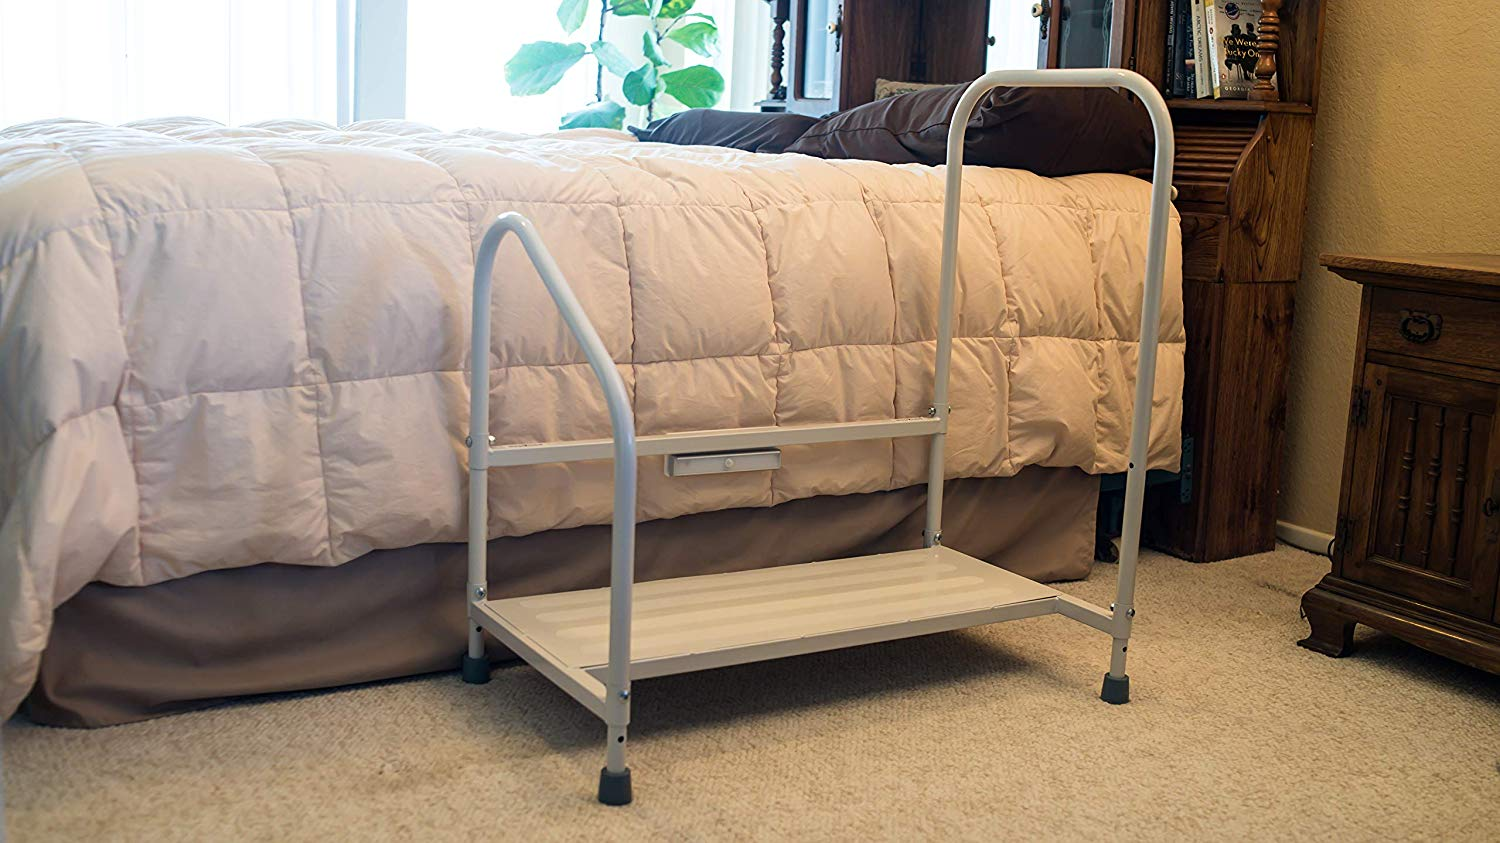 Bedside Step Stool for Seniors